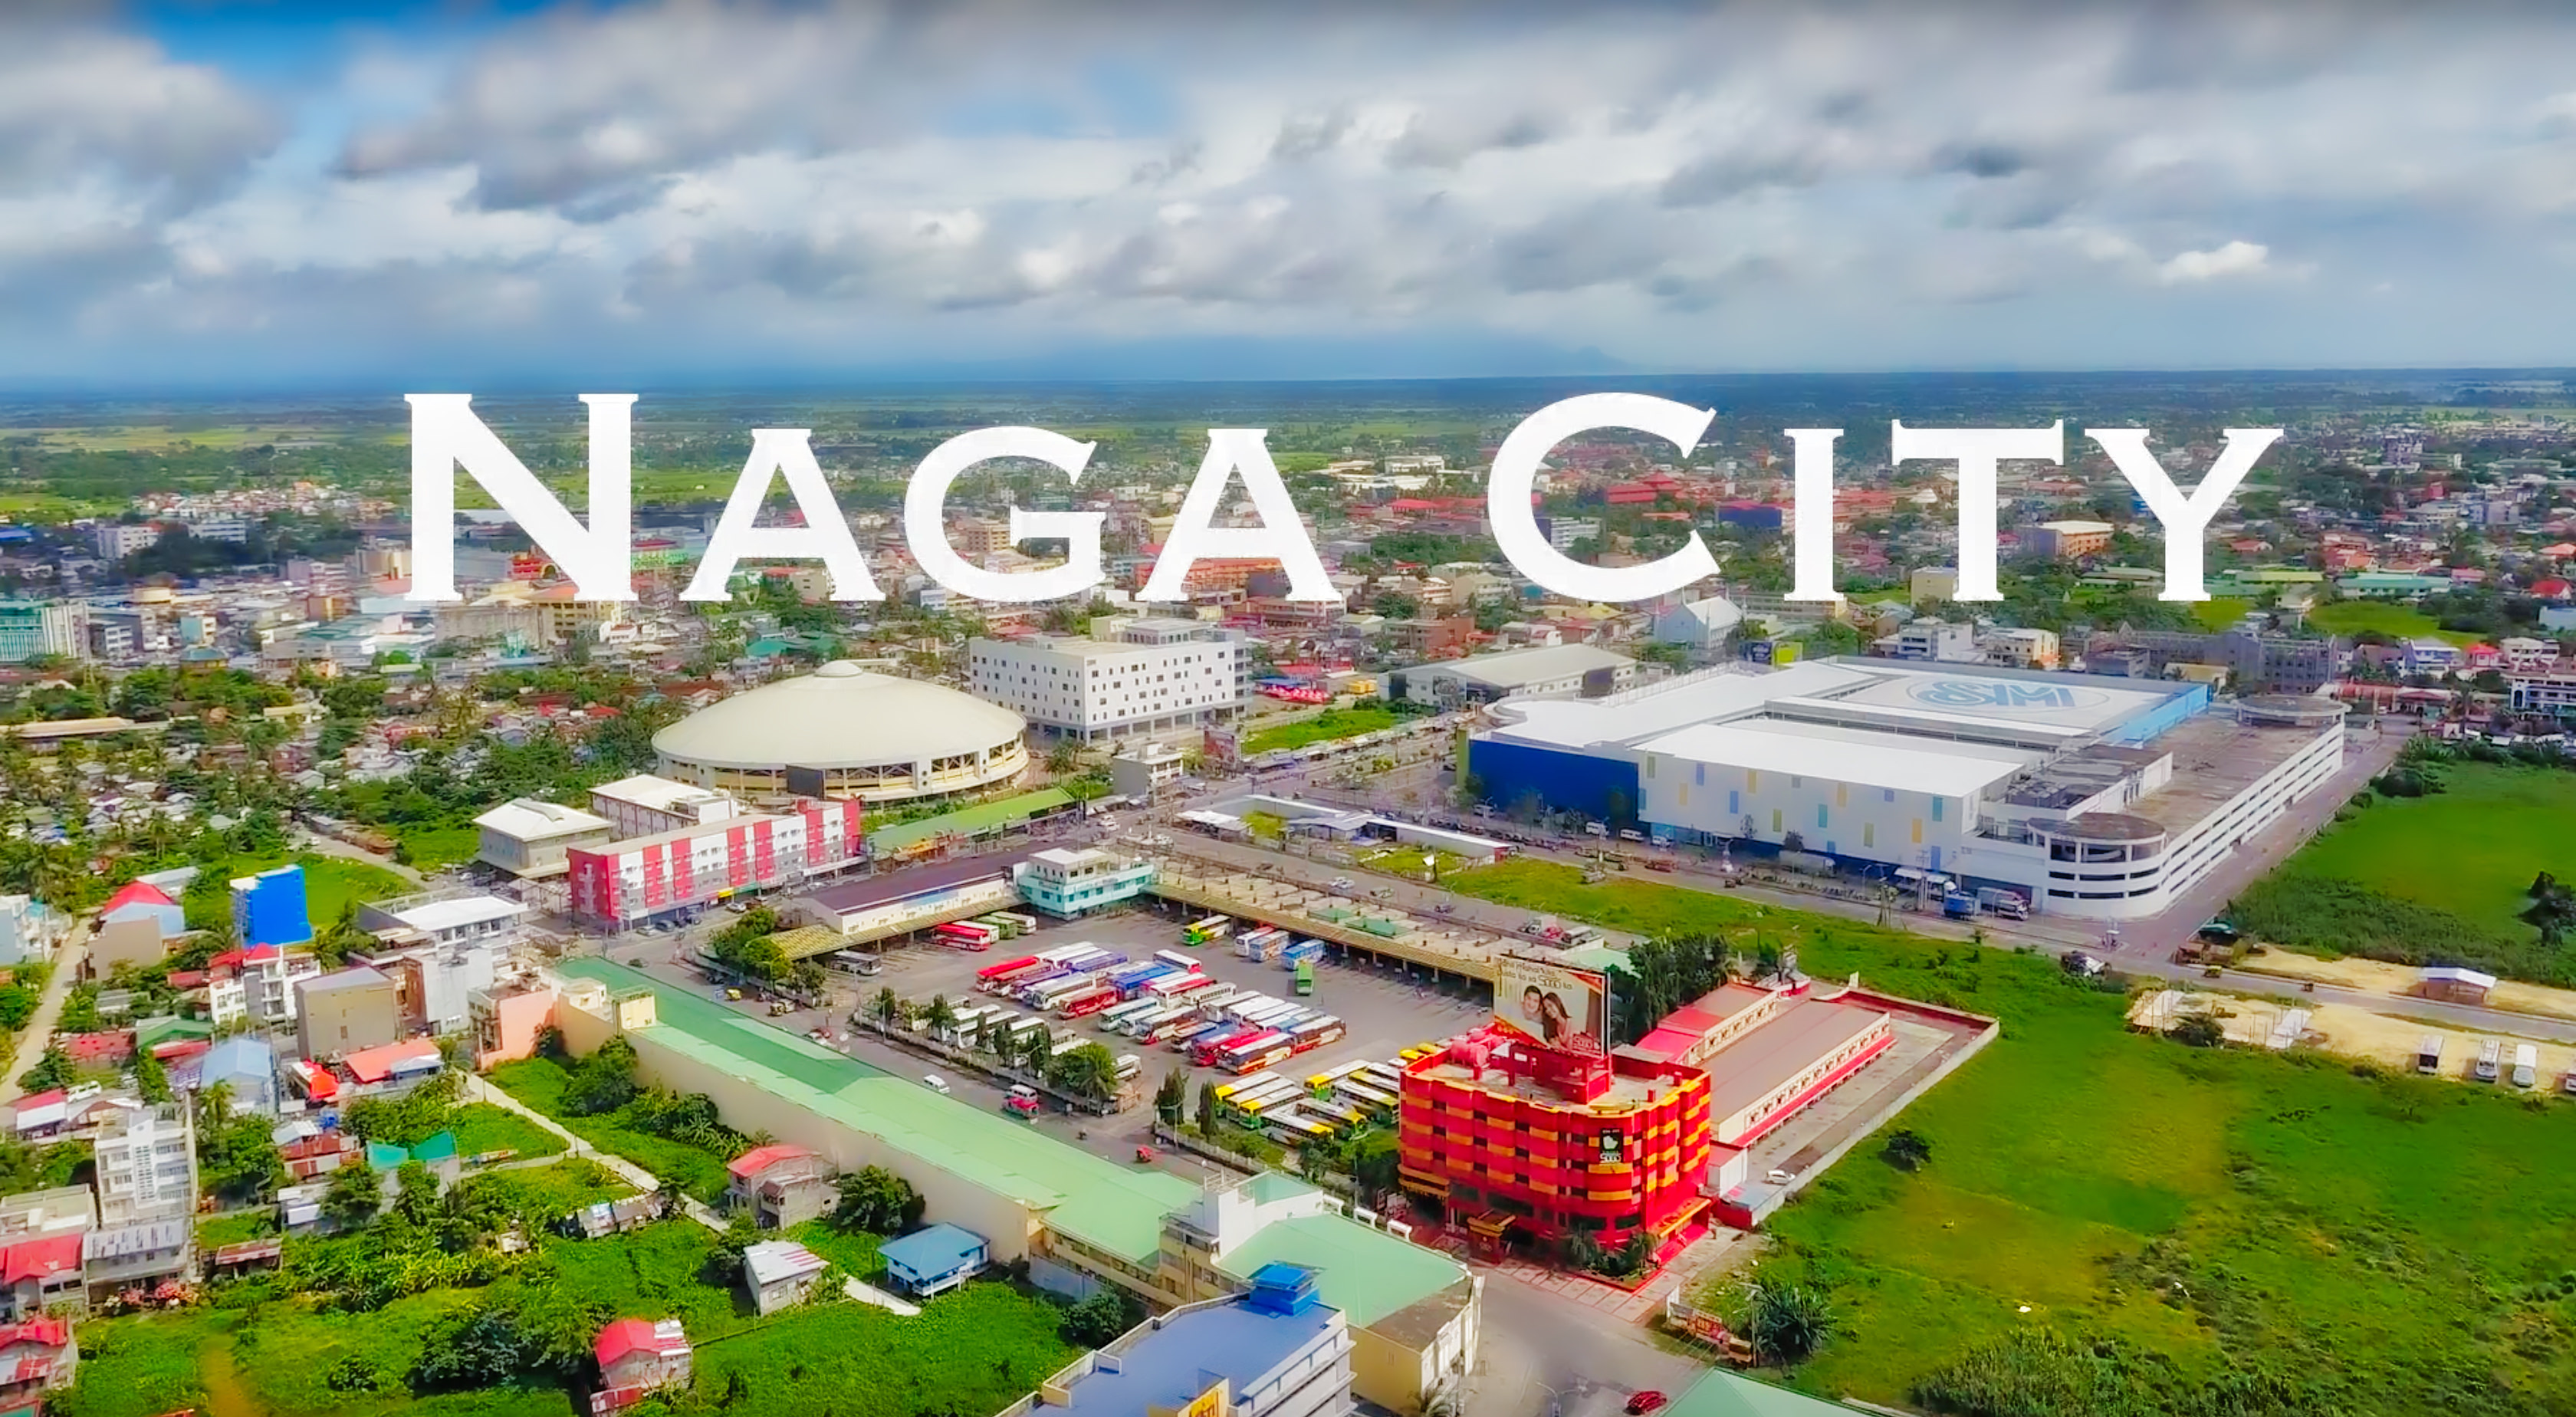 Naga city cam sur